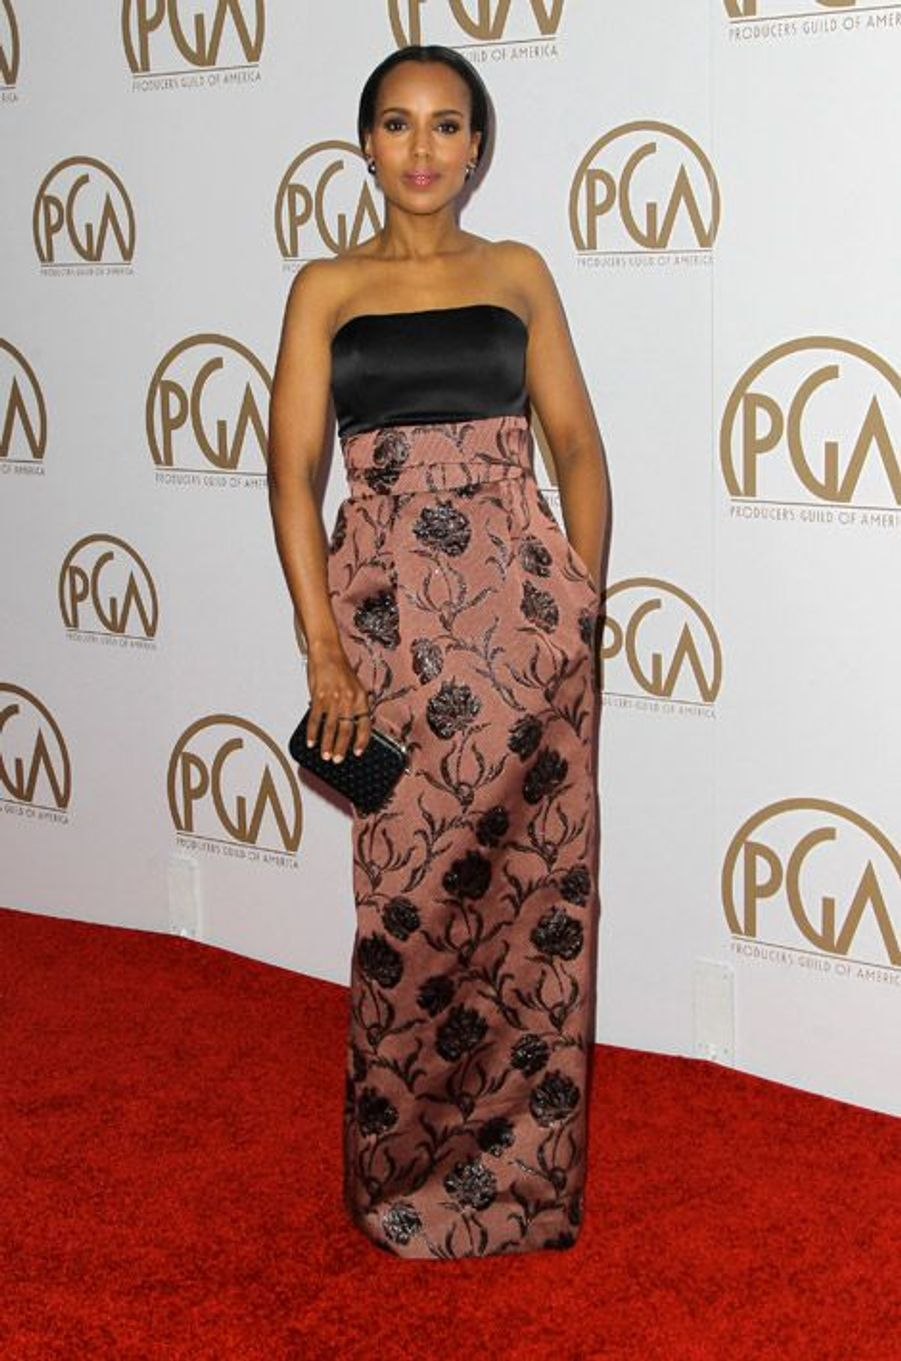 L'actrice Kerry Washington en Prabal Gurung lors de la cérémonie des Producers Guild Awards à Los Angeles, le 24 janvier 2015